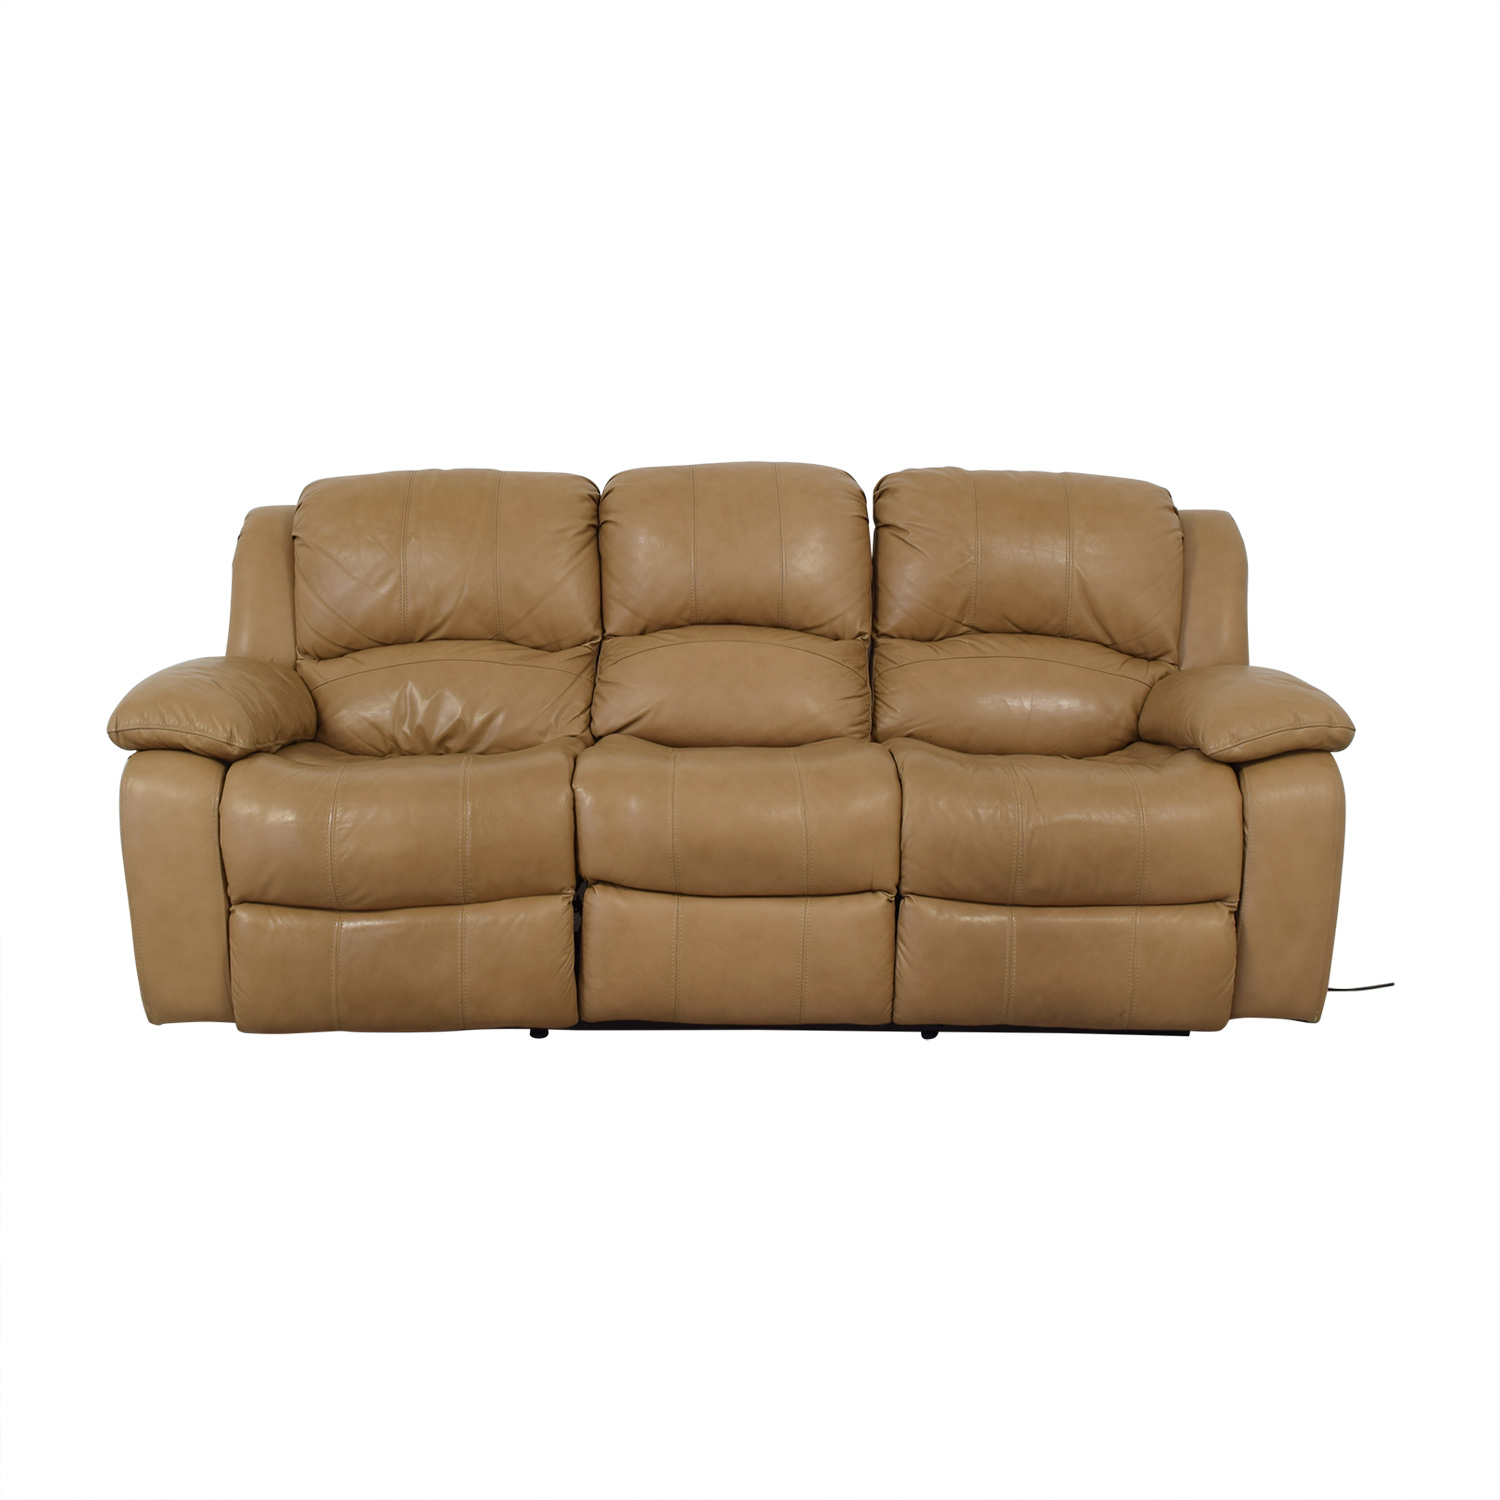 Raymour & Flanigan Raymour & Flanigan Bryant II Leather Power Reclining Sofa nj